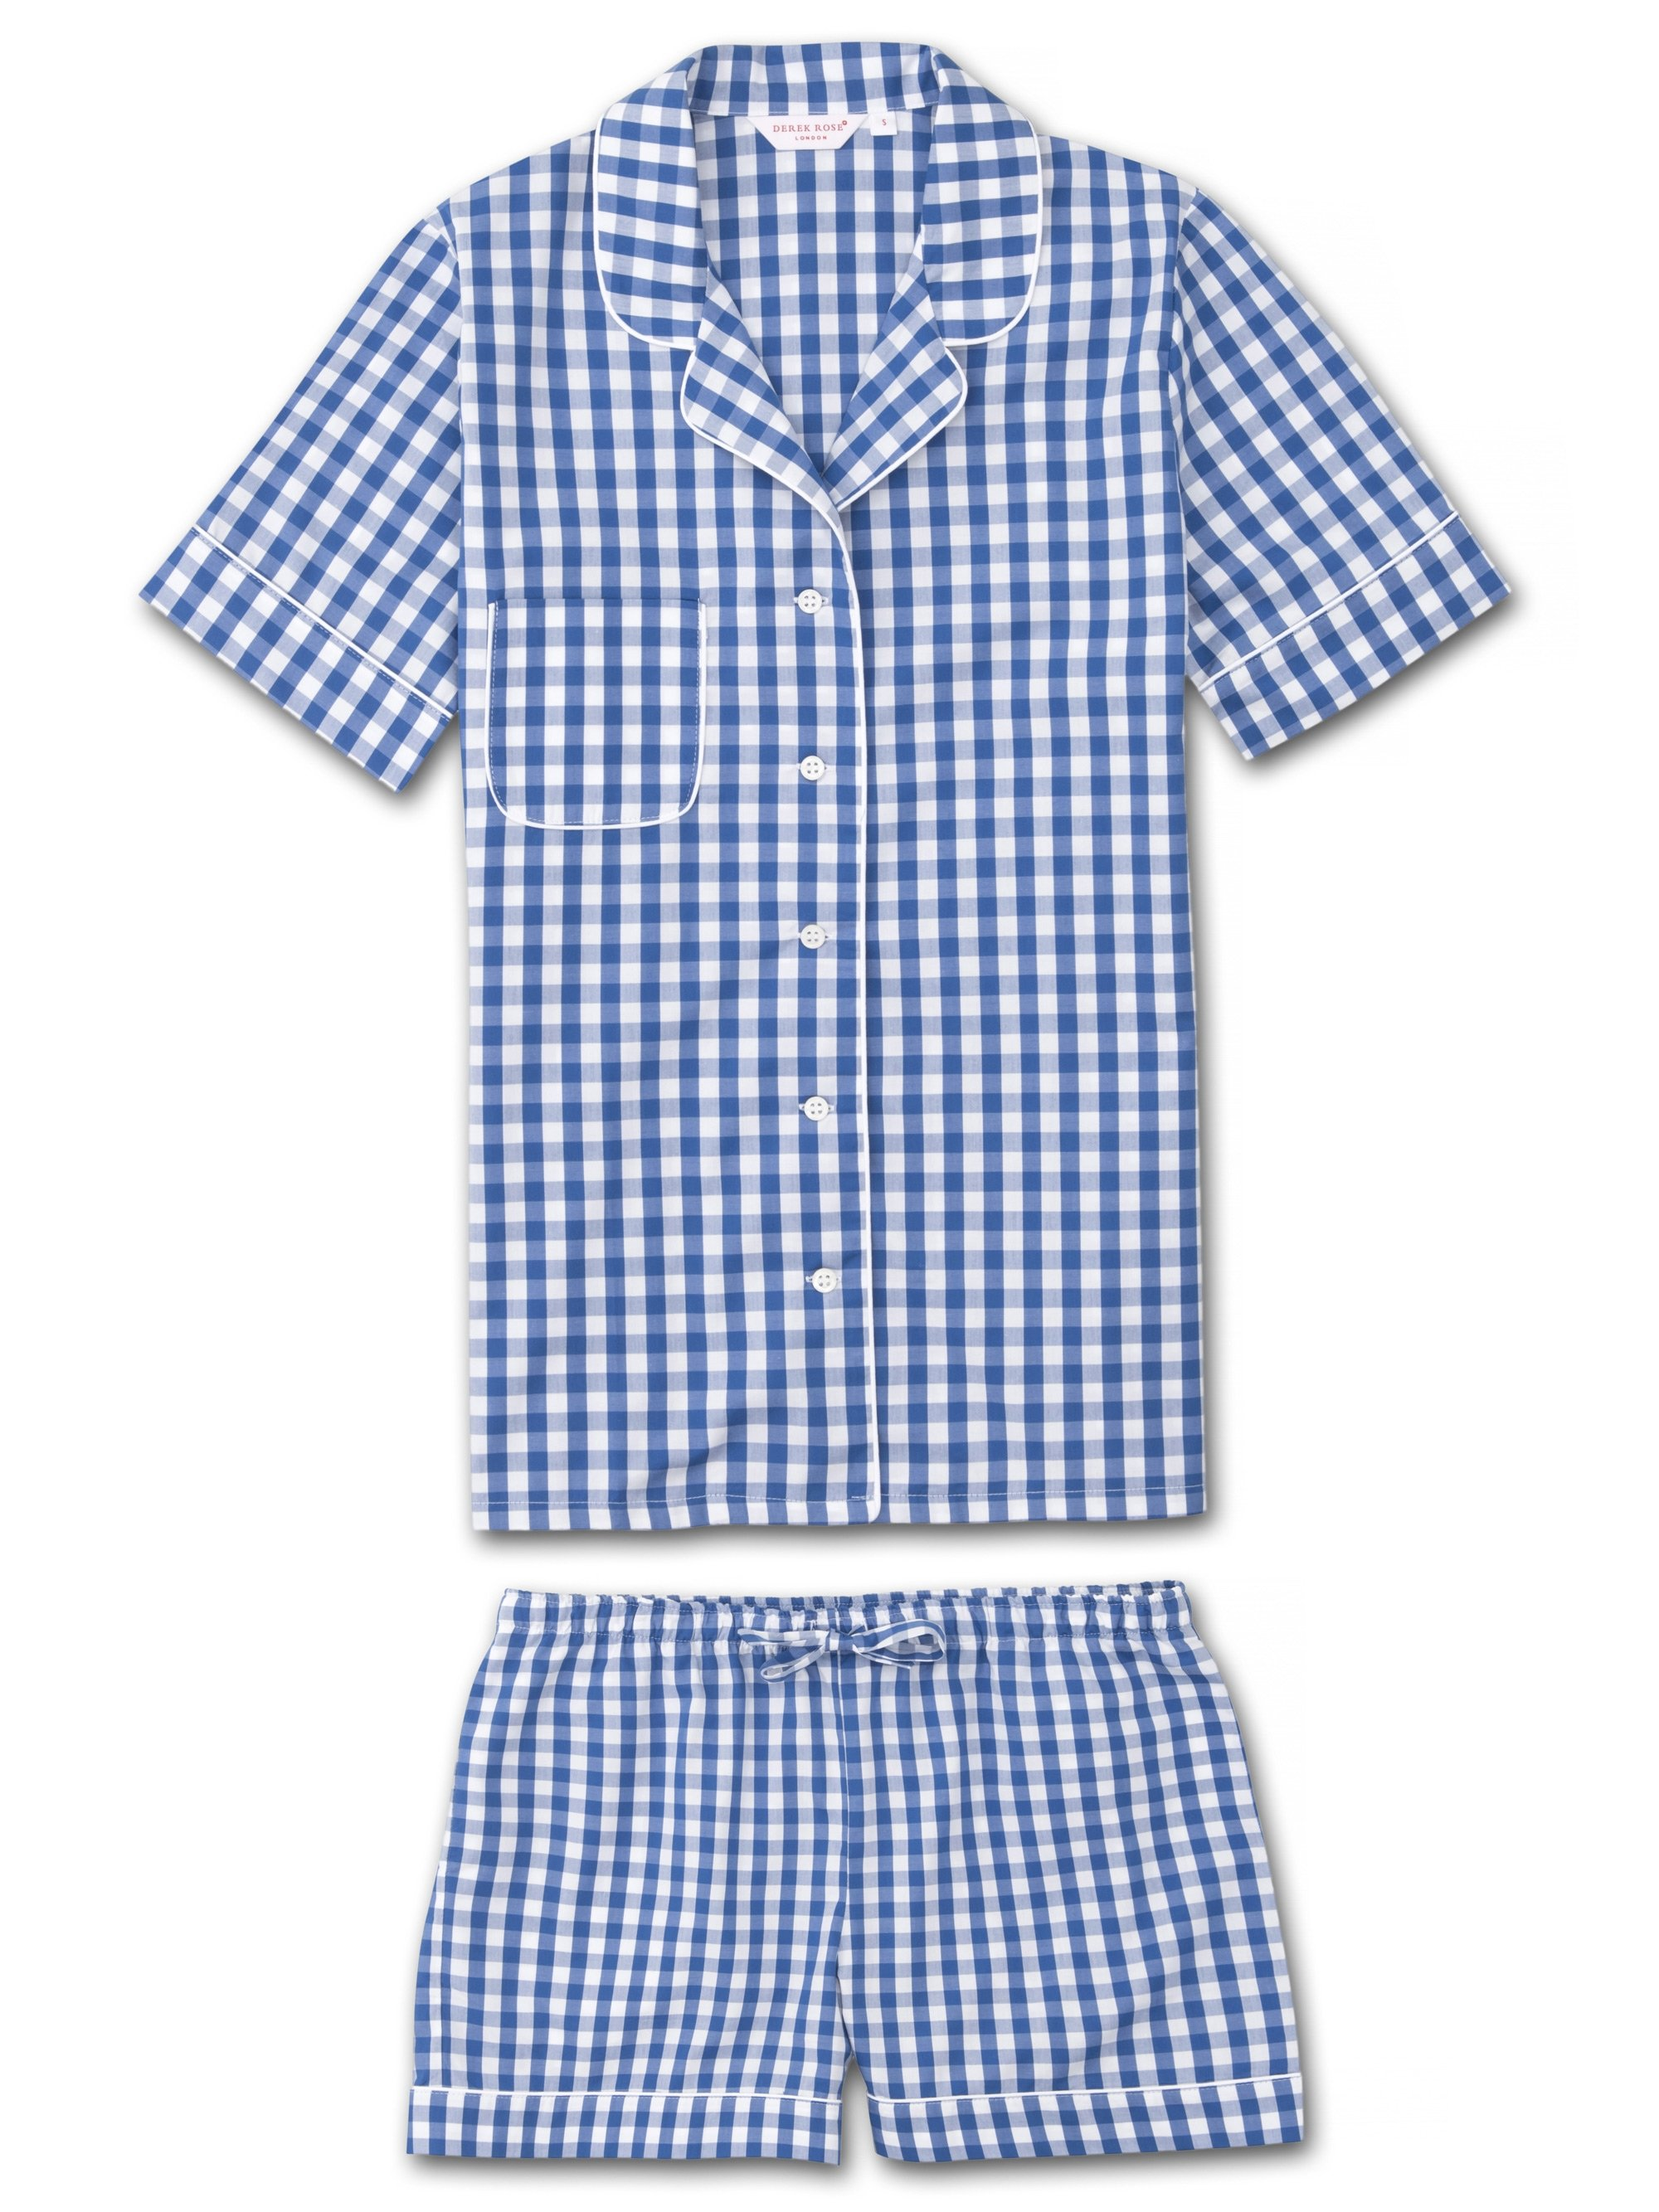 Women's Shortie Pyjamas Barker 26 Cotton Check Blue